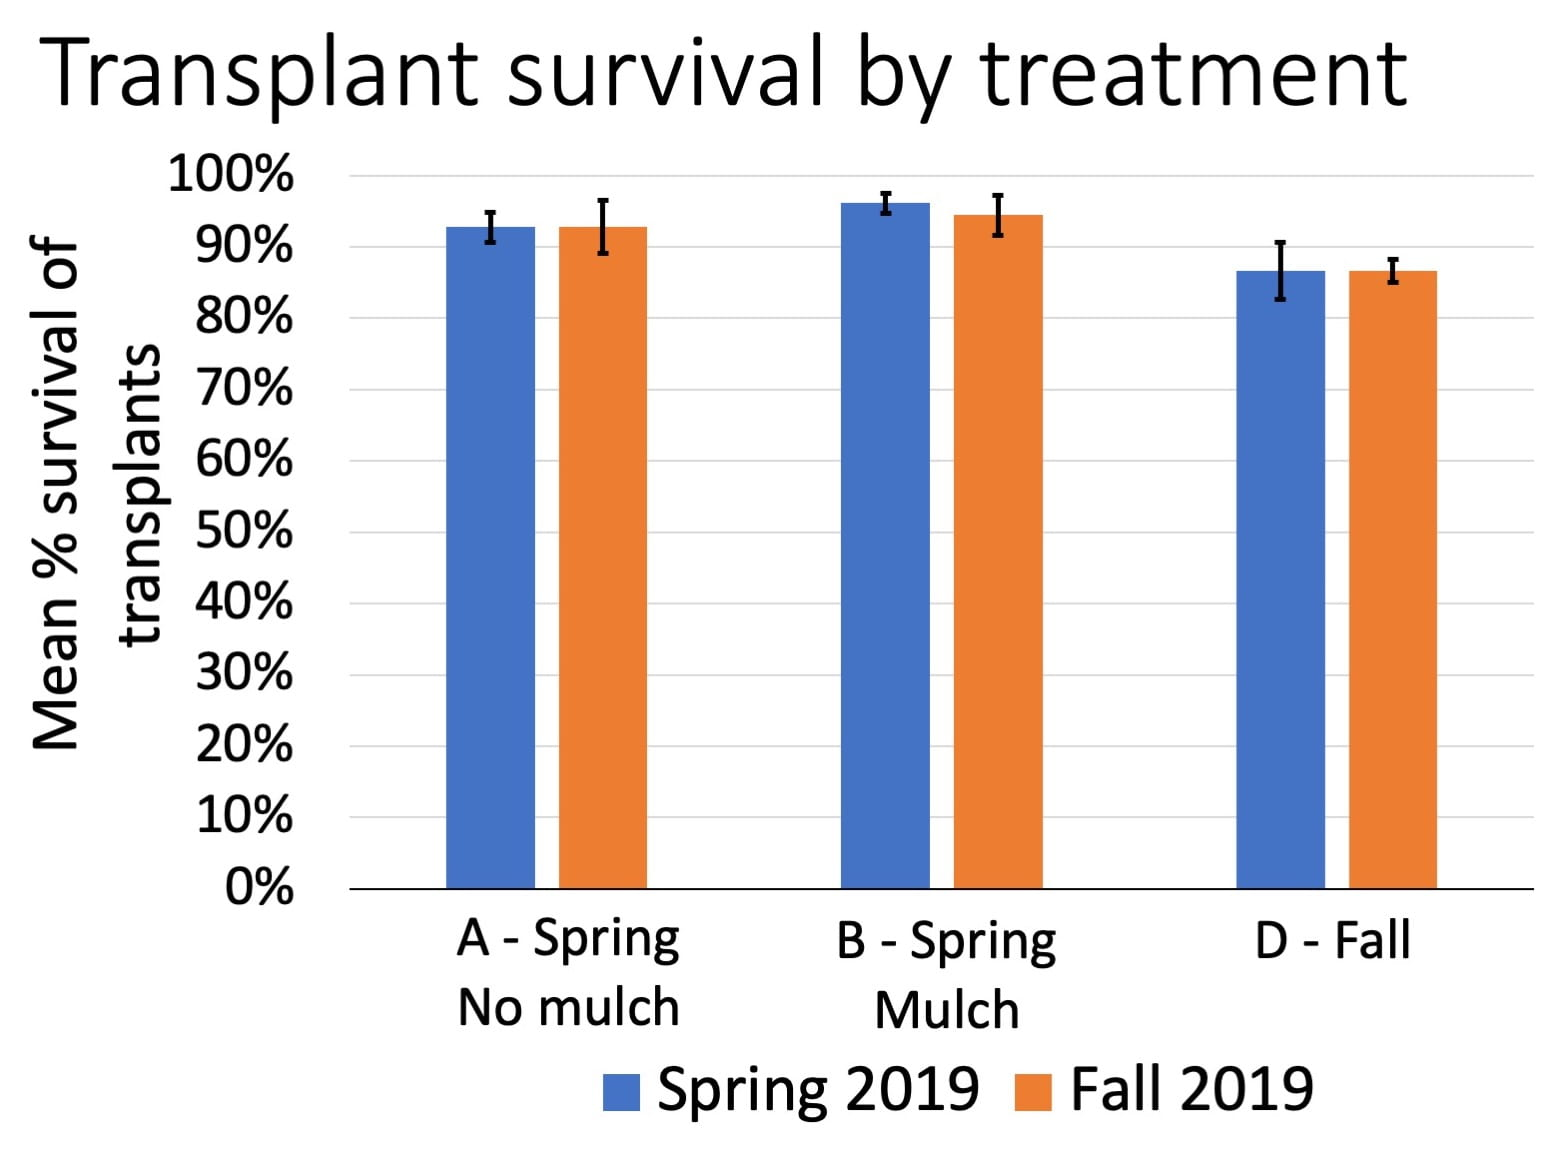 Percent of plants surviving was lowest in treatment D, but still above 80%. Survival did not change very much from Spring to Fall 2019.